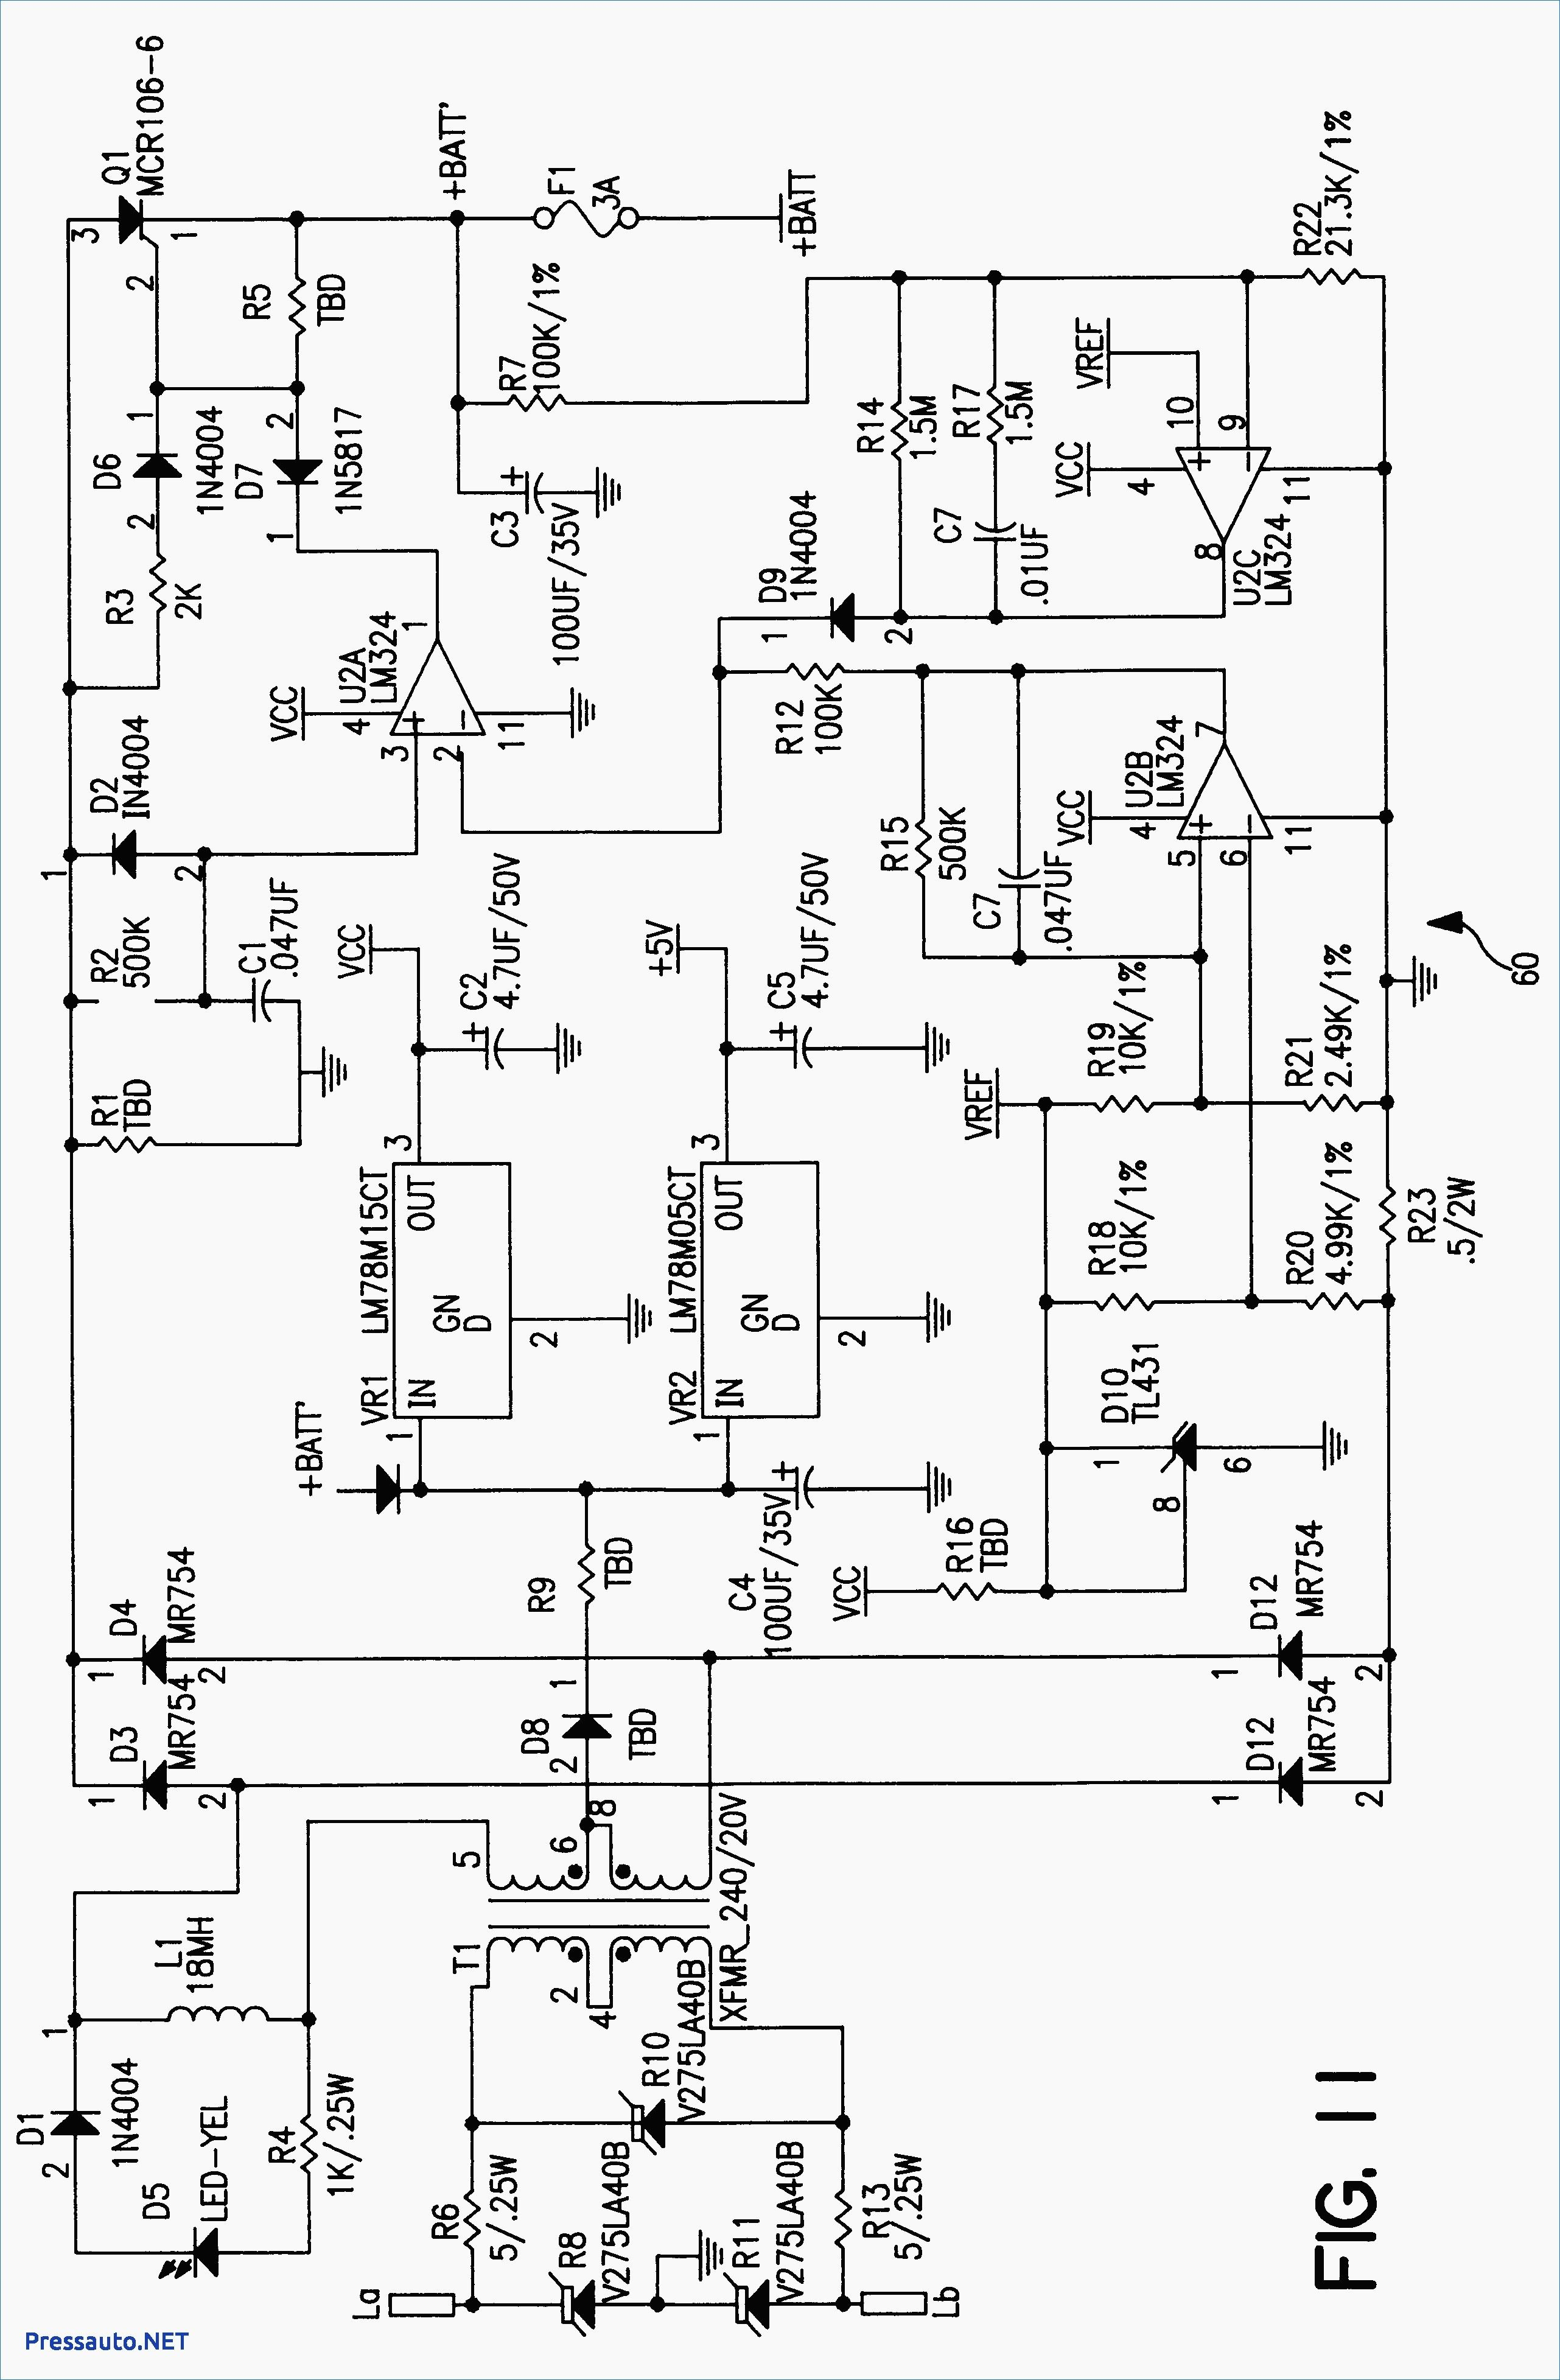 small resolution of home generator transfer switch wiring diagram wiring diagram ideas generator fuel system diagram generator solenoid diagram